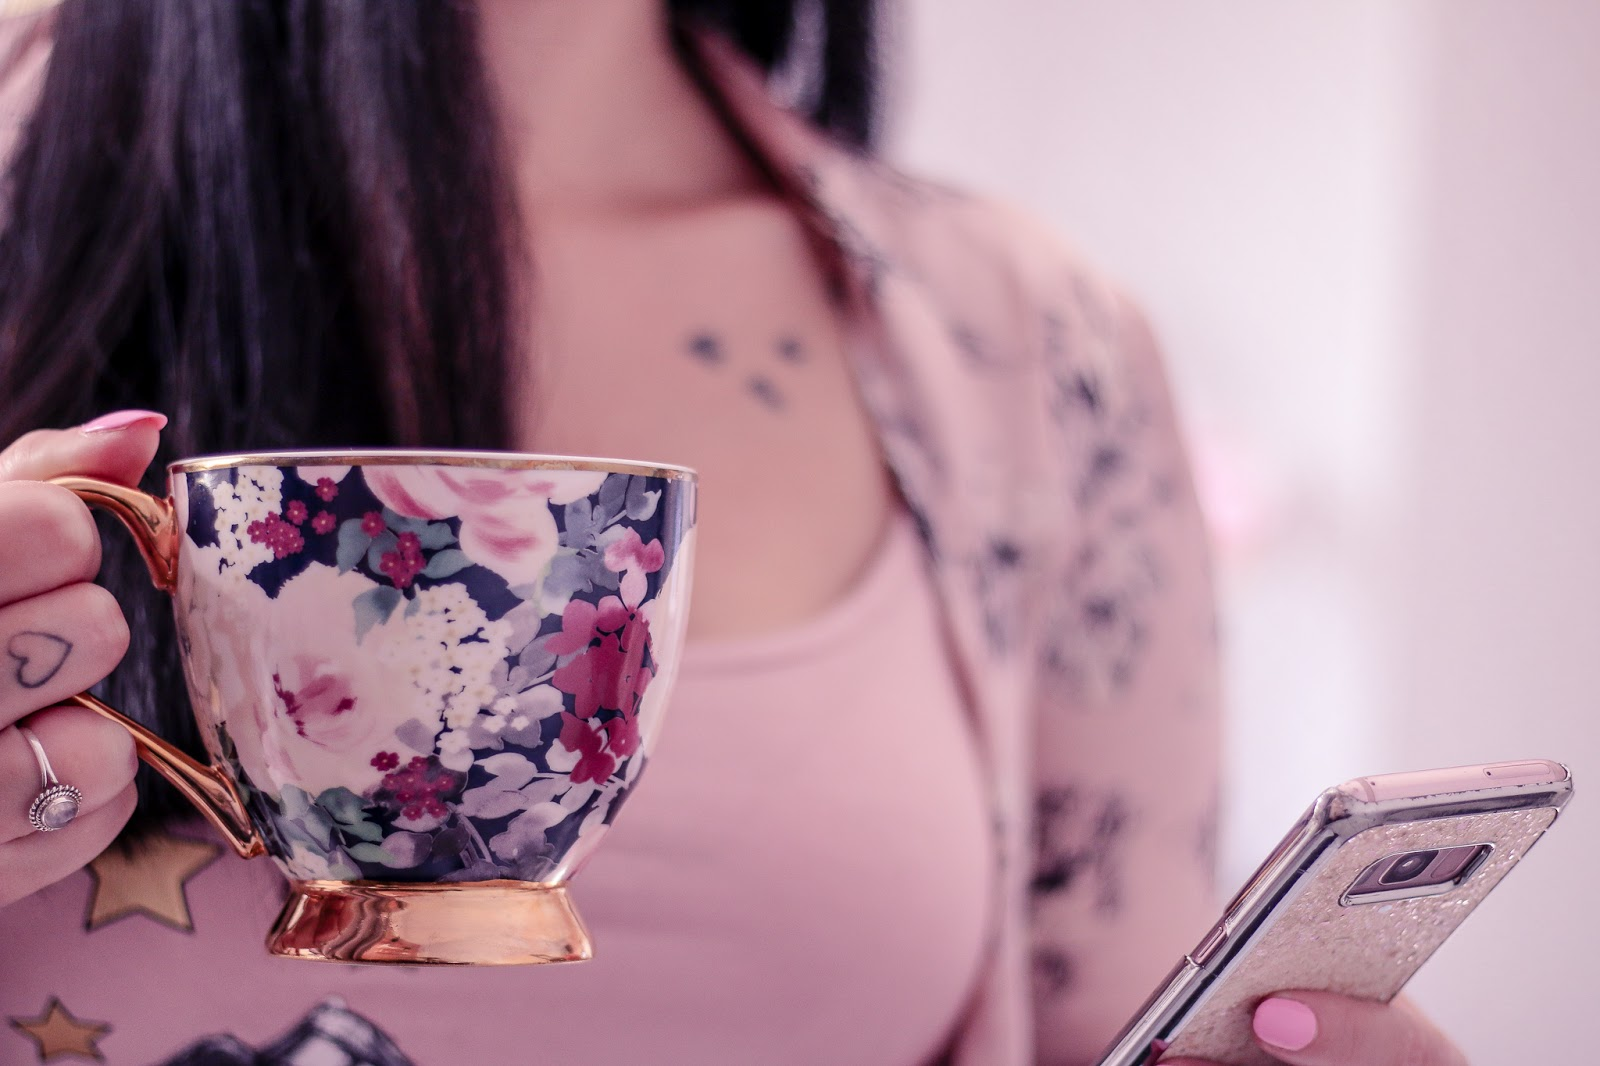 Close up photo of Ofaglasgowgirl holding a flower mug and a samsung s10+ in pink pjs and pink satin robe